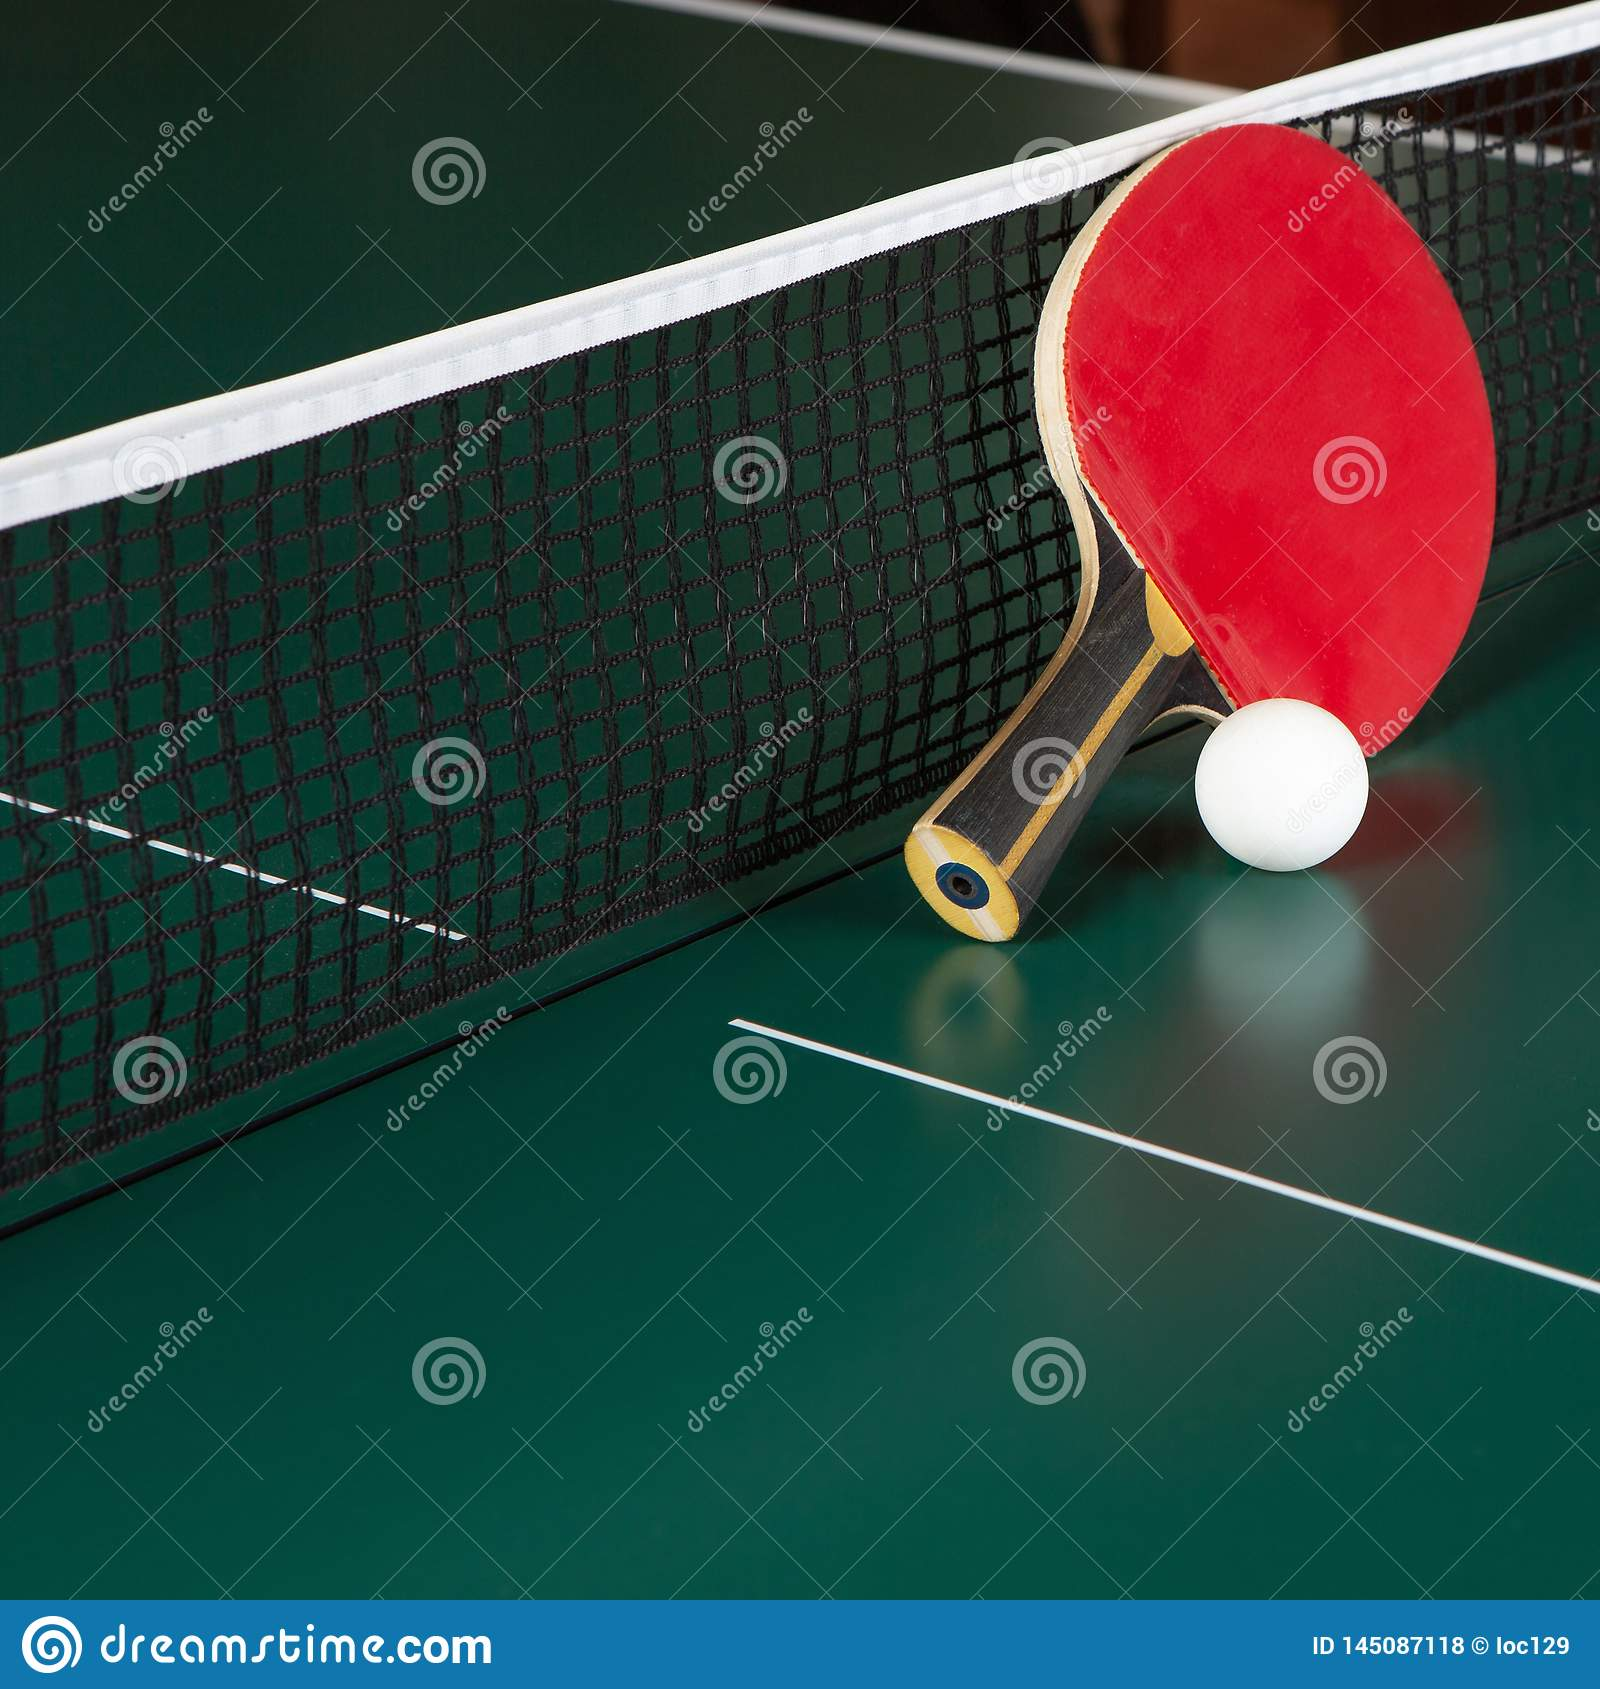 Ping-pong racket and a ball on a green table. Close-up